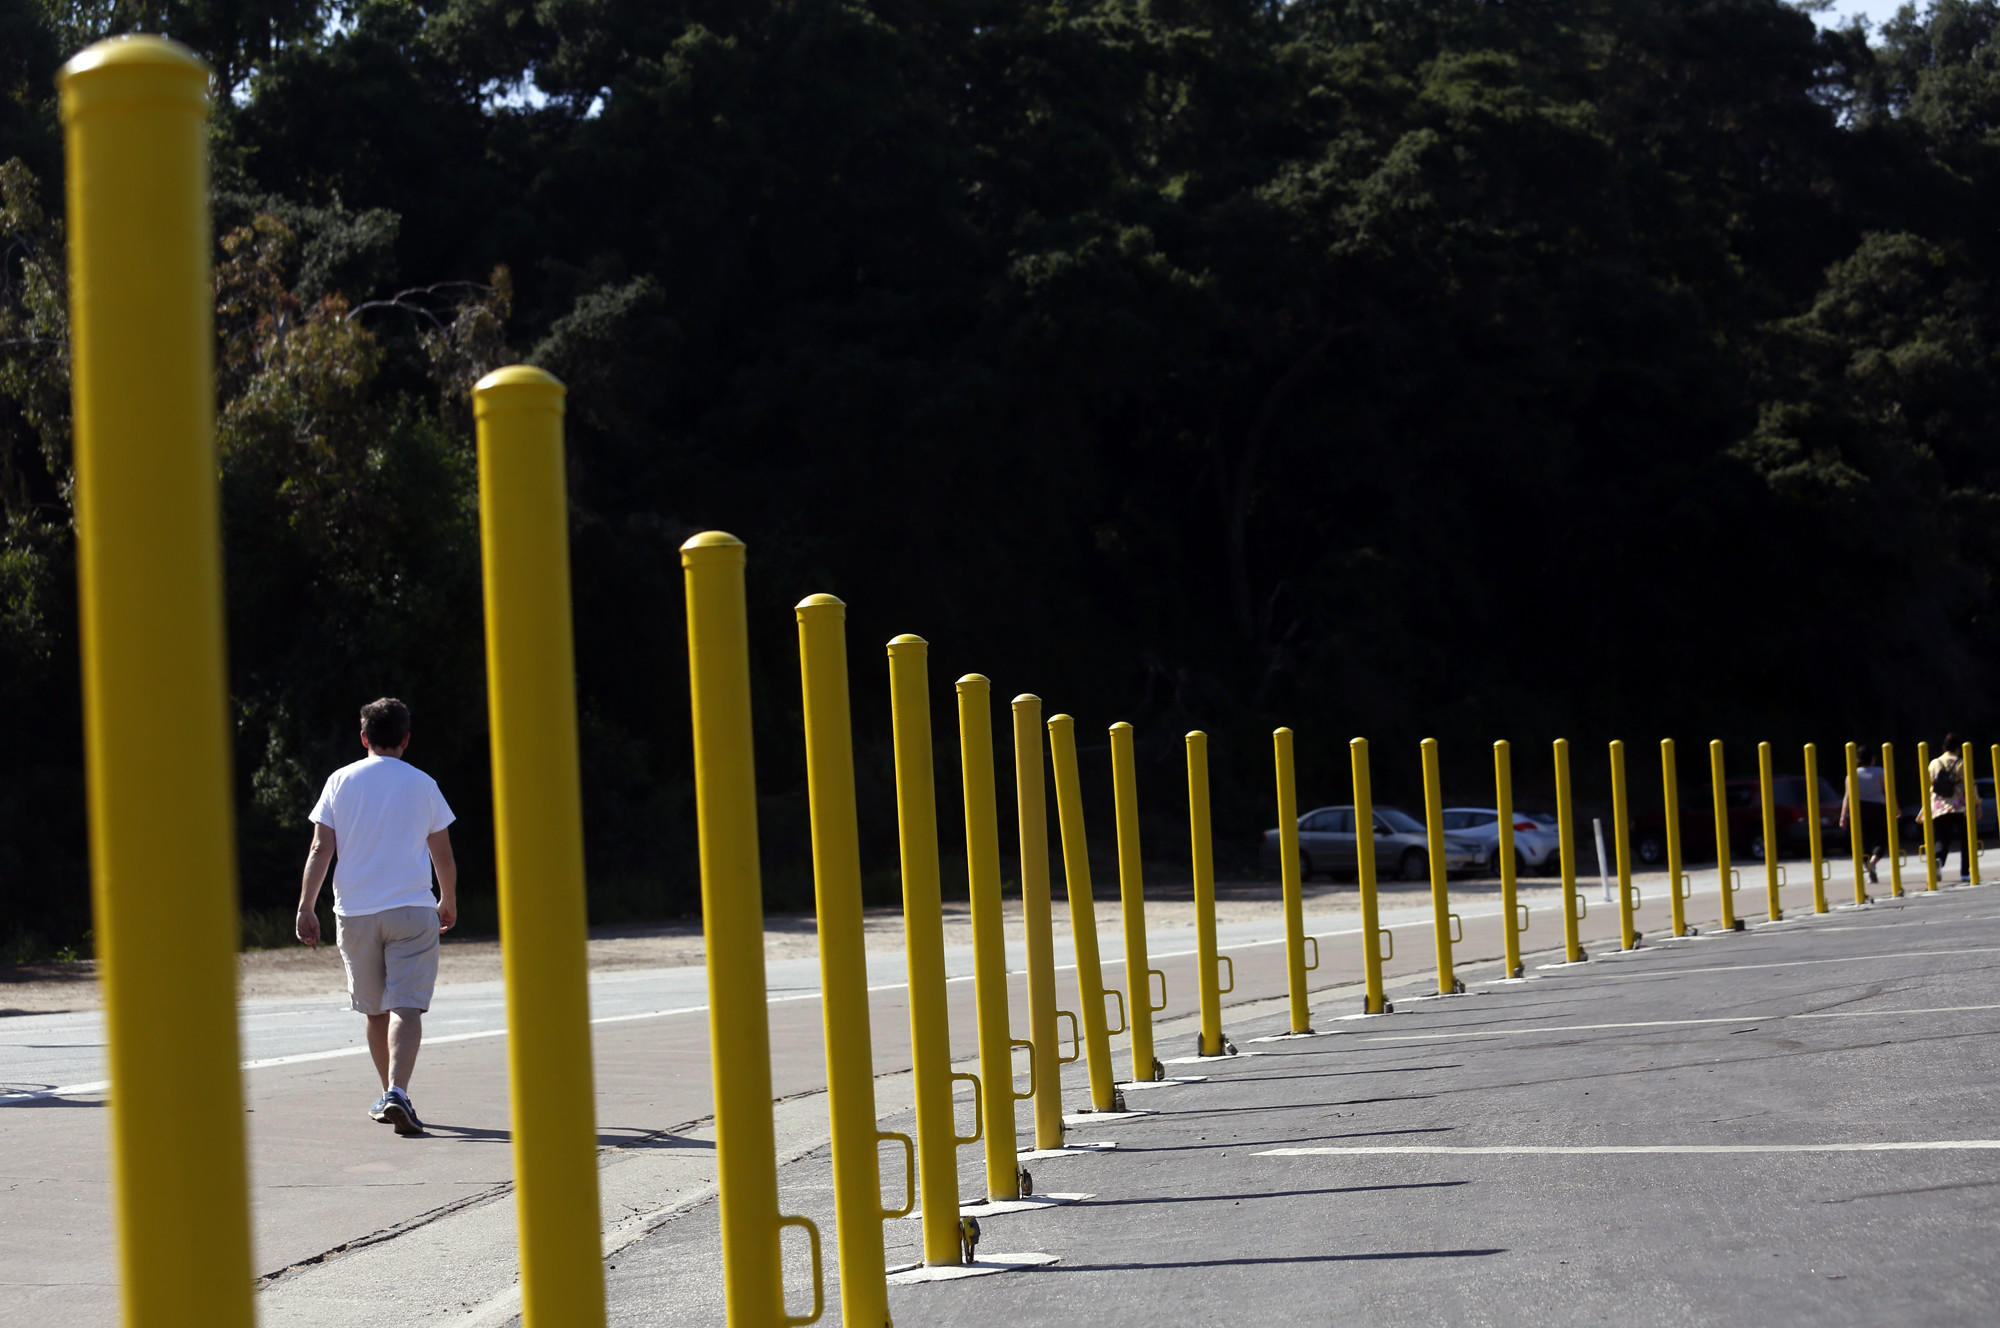 A man begins his walk south of the Rose Bowl stadium, near the corner of West Drive and Seco Street in Pasadena.